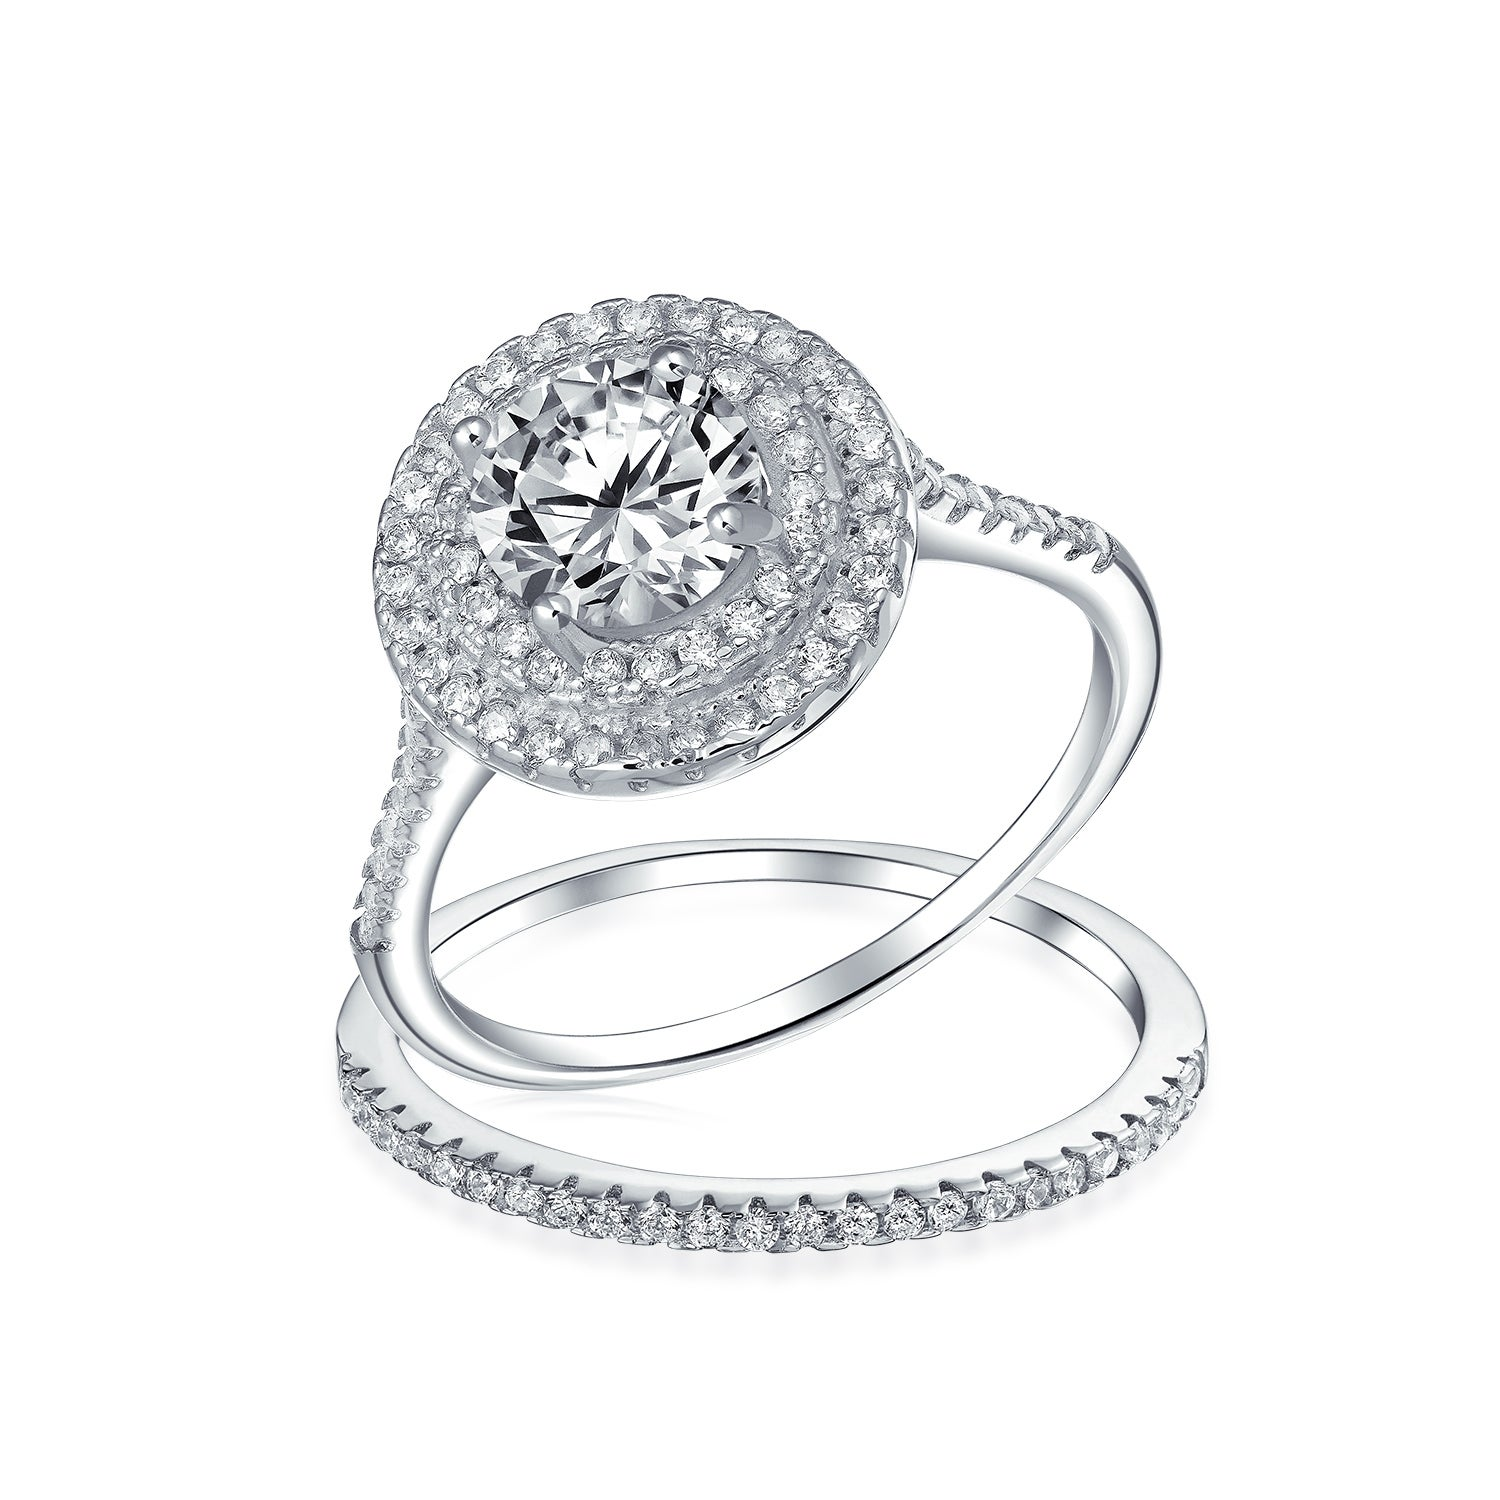 Oval Cubic Zirconia Center with All Around CZ Stones Double Band Wedding Wedding Ring Sterling Silver